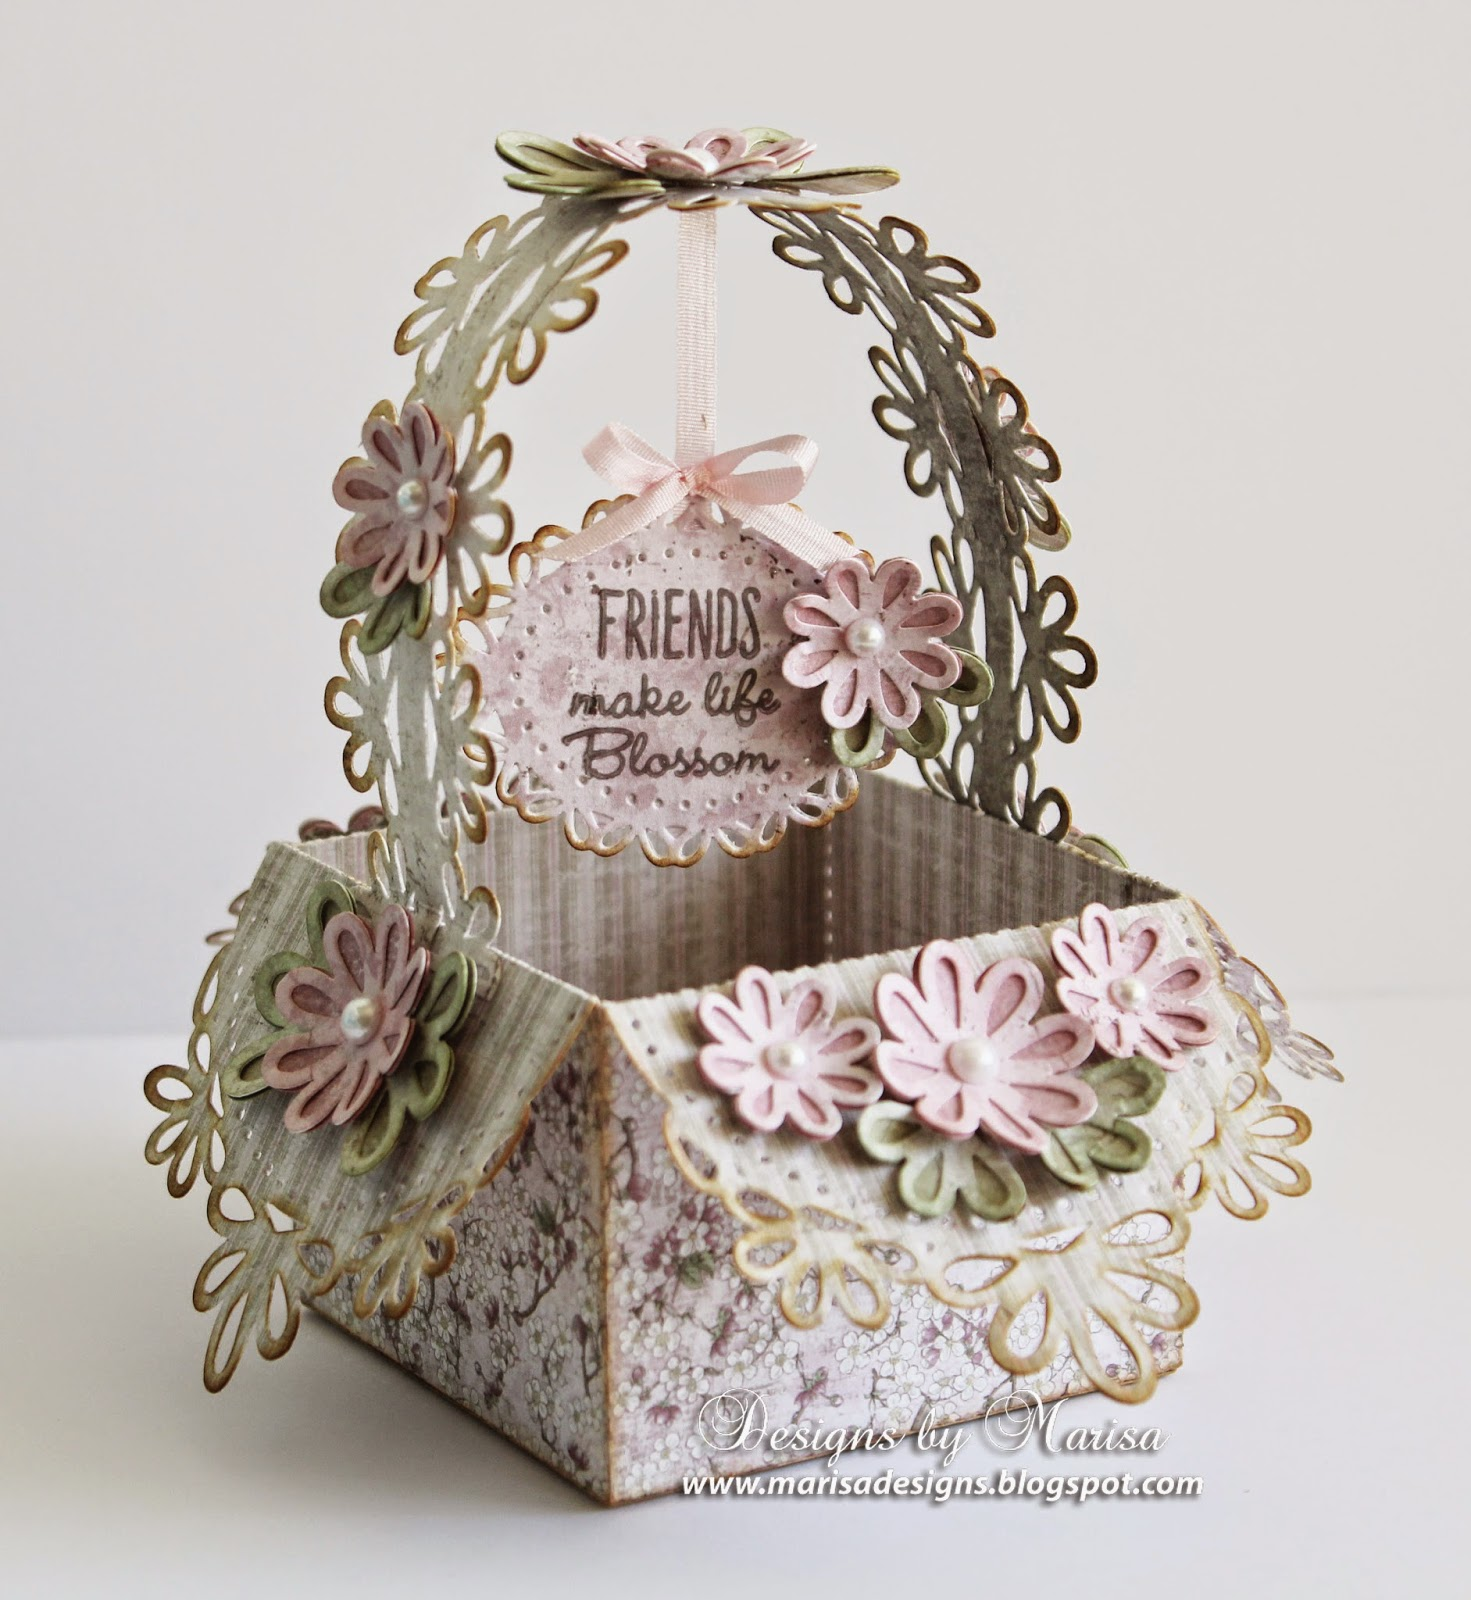 I Also Used Spellbinders New Dies That Designed For Them To Make The Basket And Card